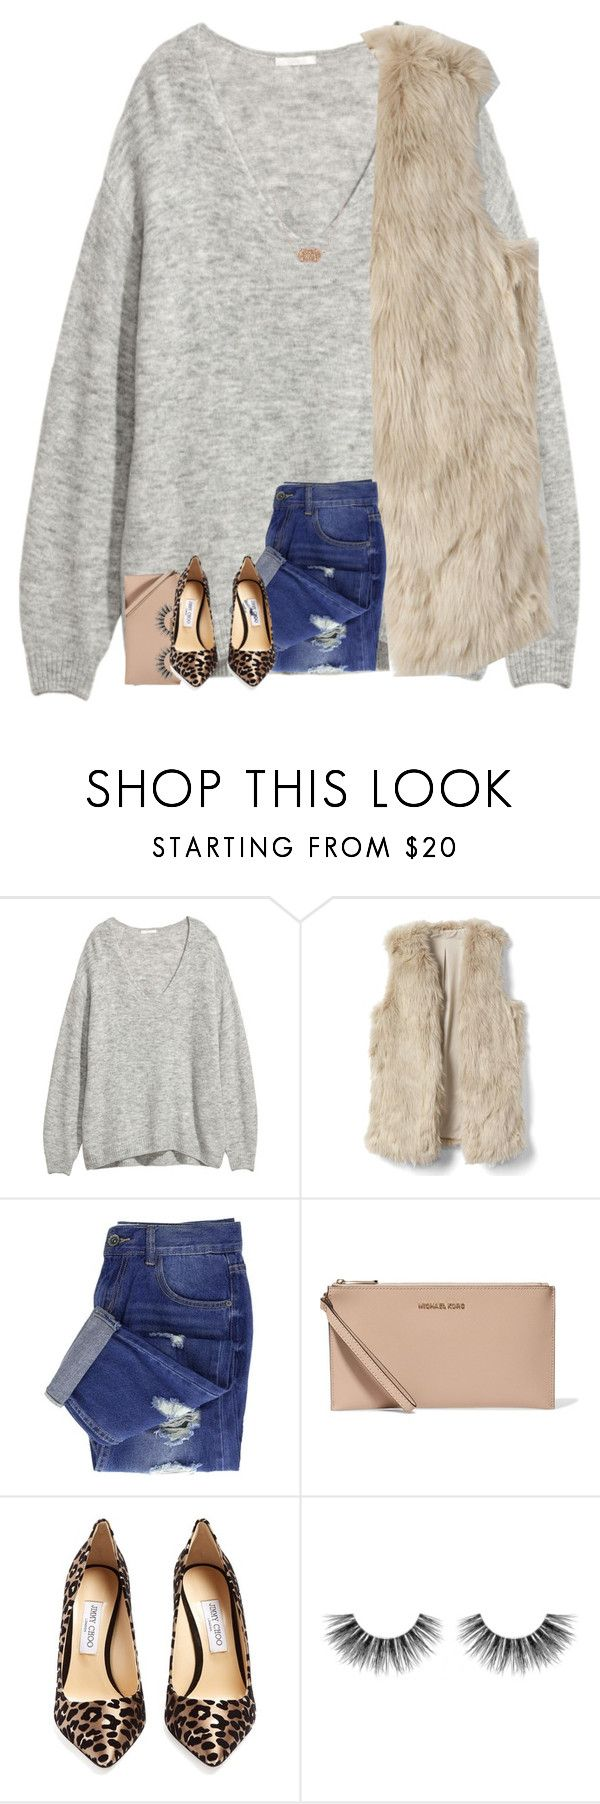 """greys anatomy"" by legitmaddywill ❤ liked on Polyvore featuring MICHAEL Michael Kors, Jimmy Choo, Velour Lashes and Kendra Scott"